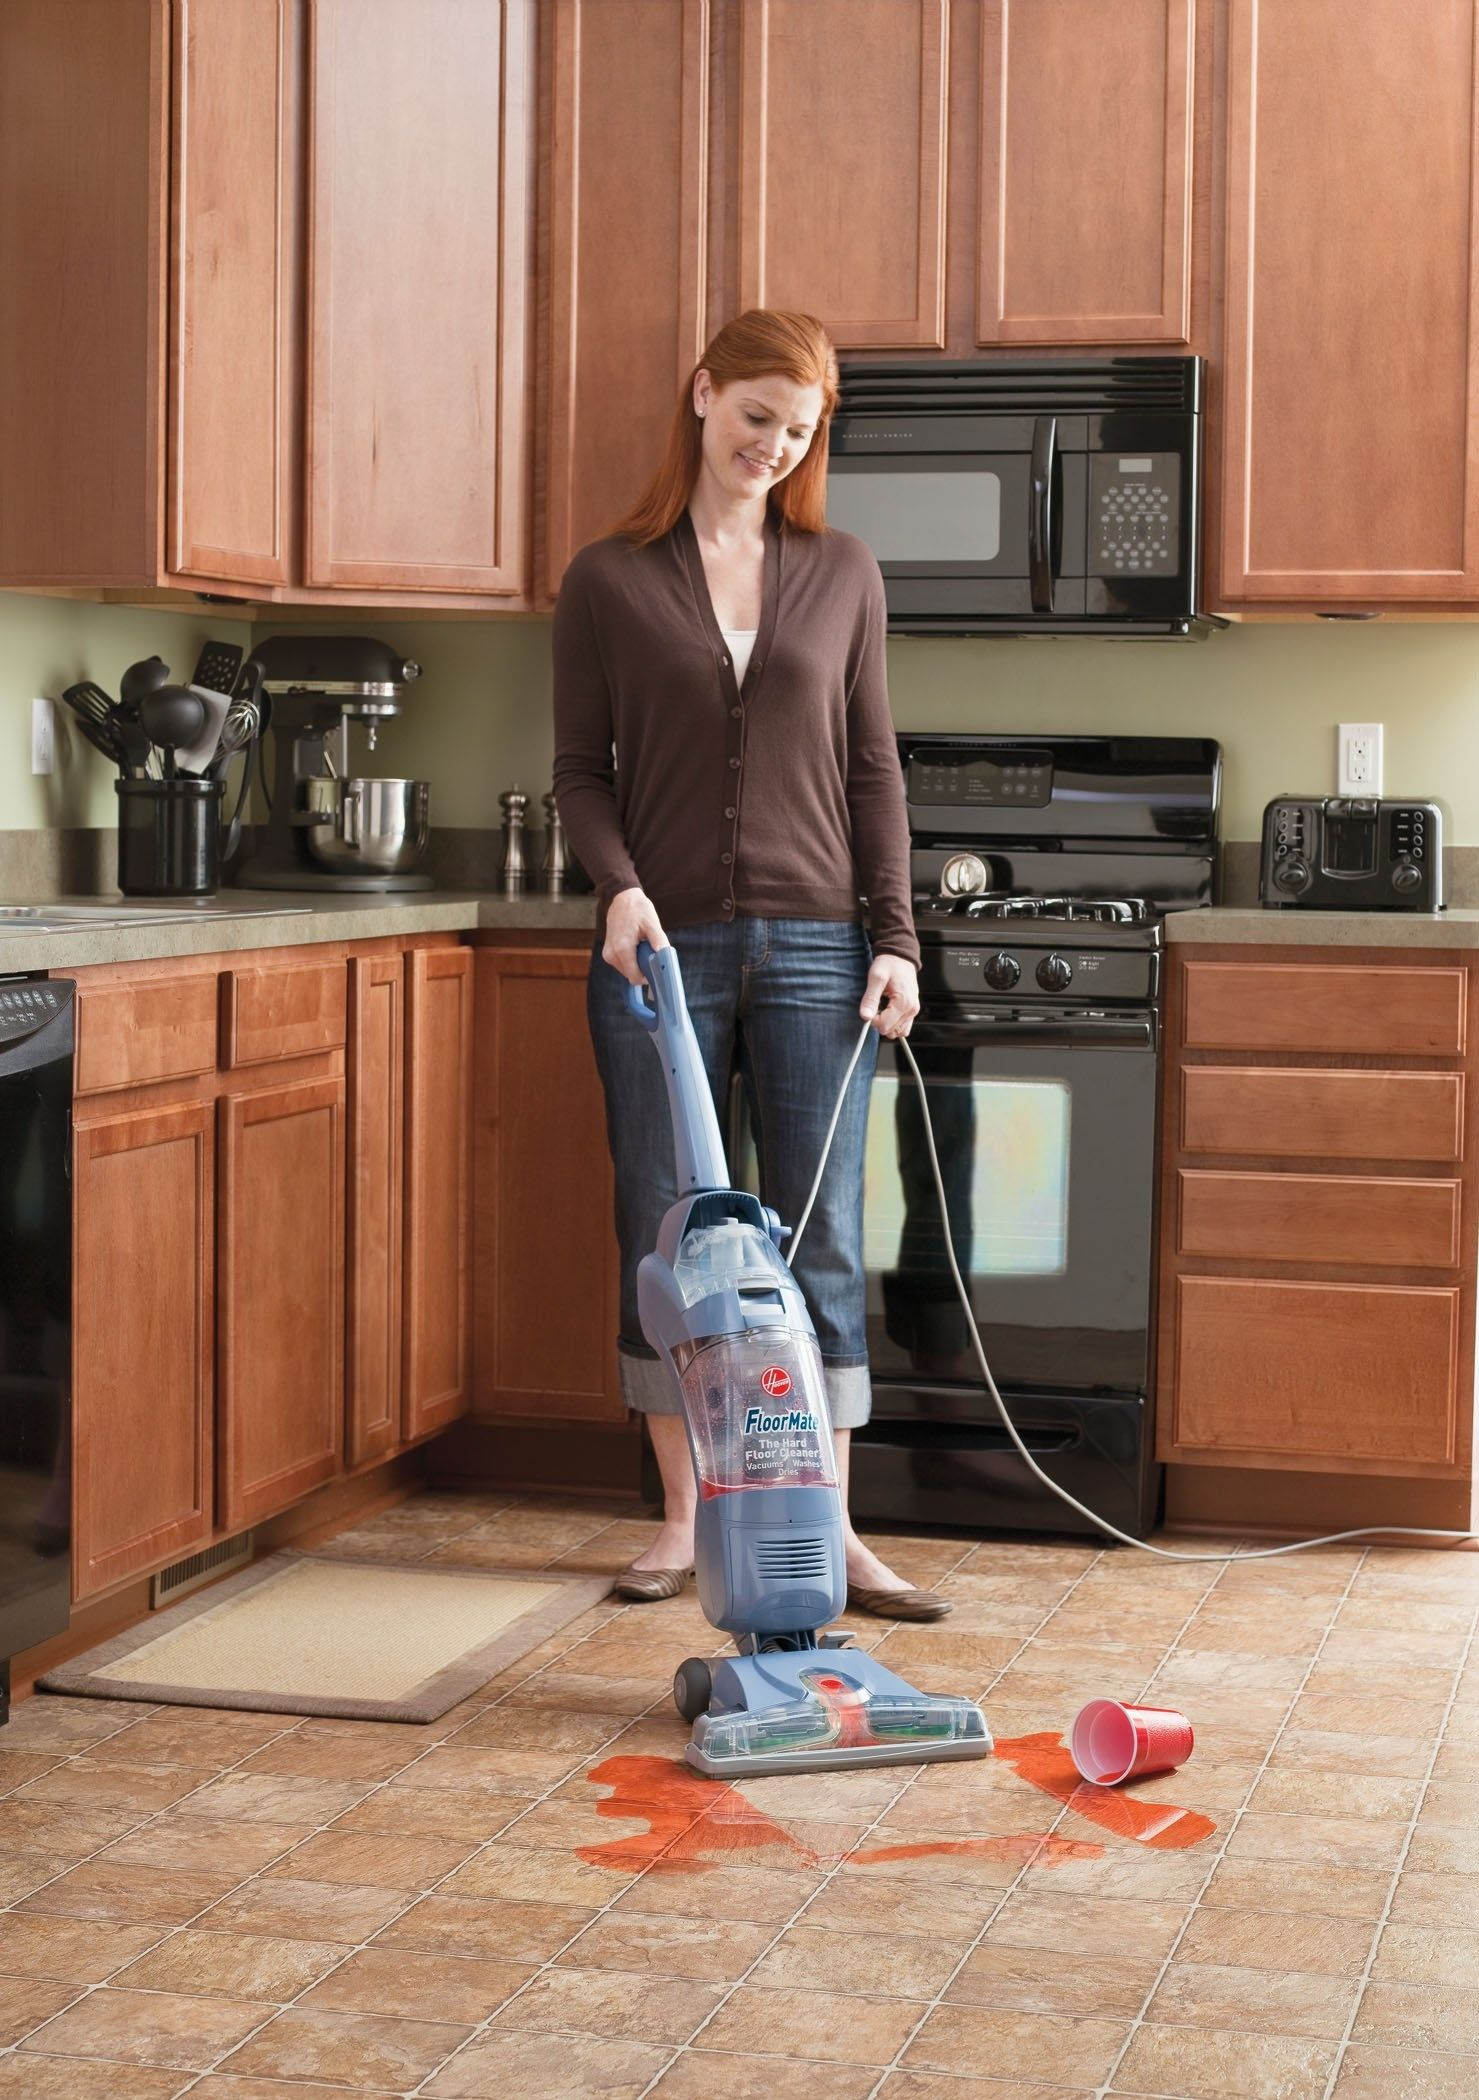 Best wet dry vacuum for tile floors httpnextsoft21 hoover hardwood floor cleaner floormate spinscrub with bonus hard floor wipes corded bare floor cleaner clean while gently scrubbing sealed wood and vinyl dailygadgetfo Choice Image